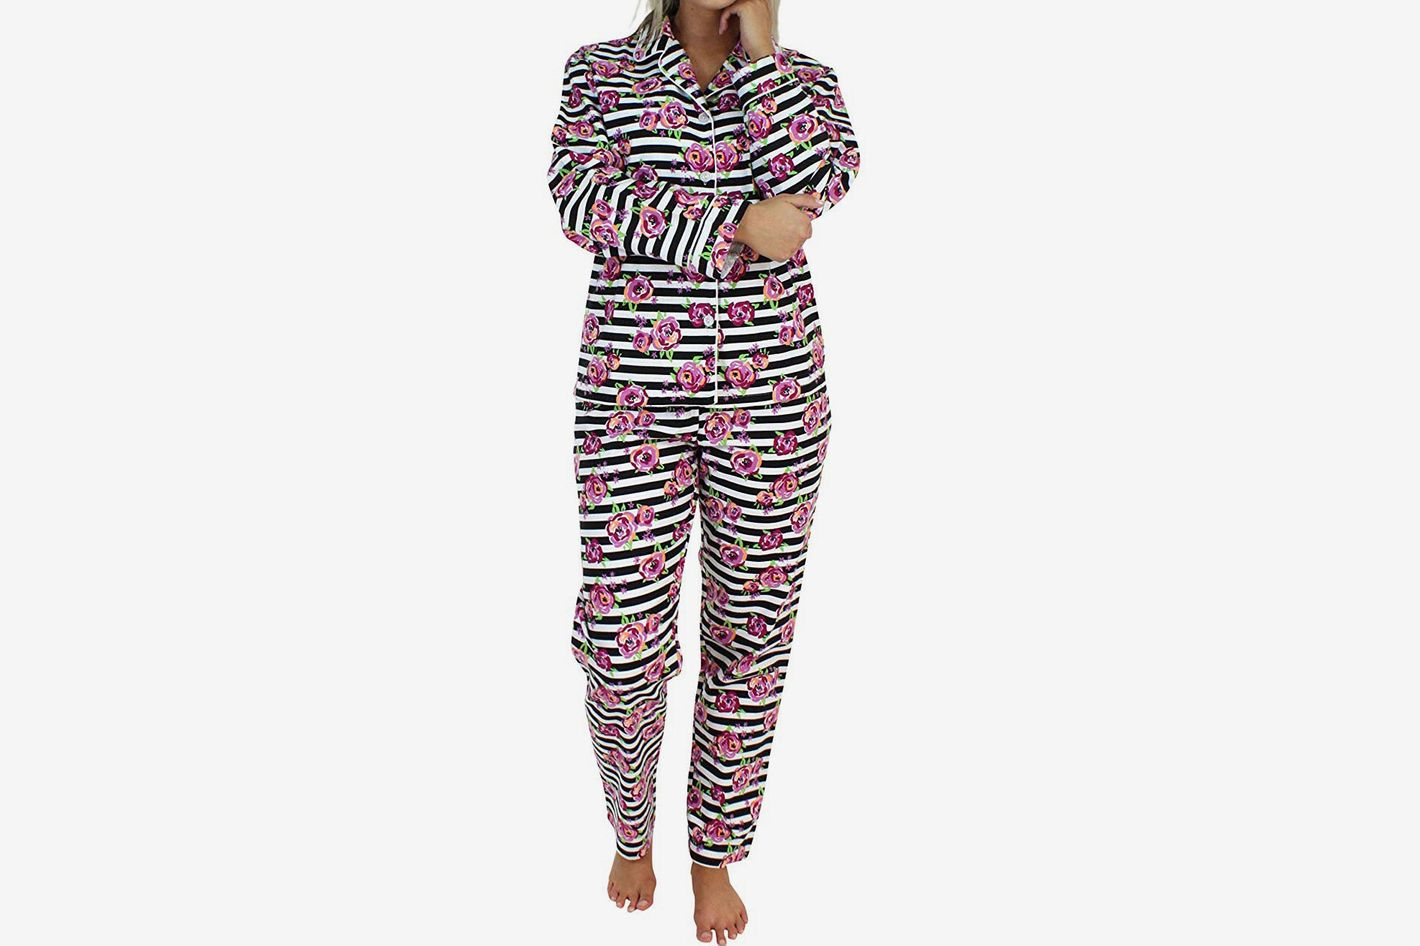 6aa7eca379 Best patterned flannel pajama set. PajamaMania Women s Sleepwear Flannel  Long Sleeve Pajamas